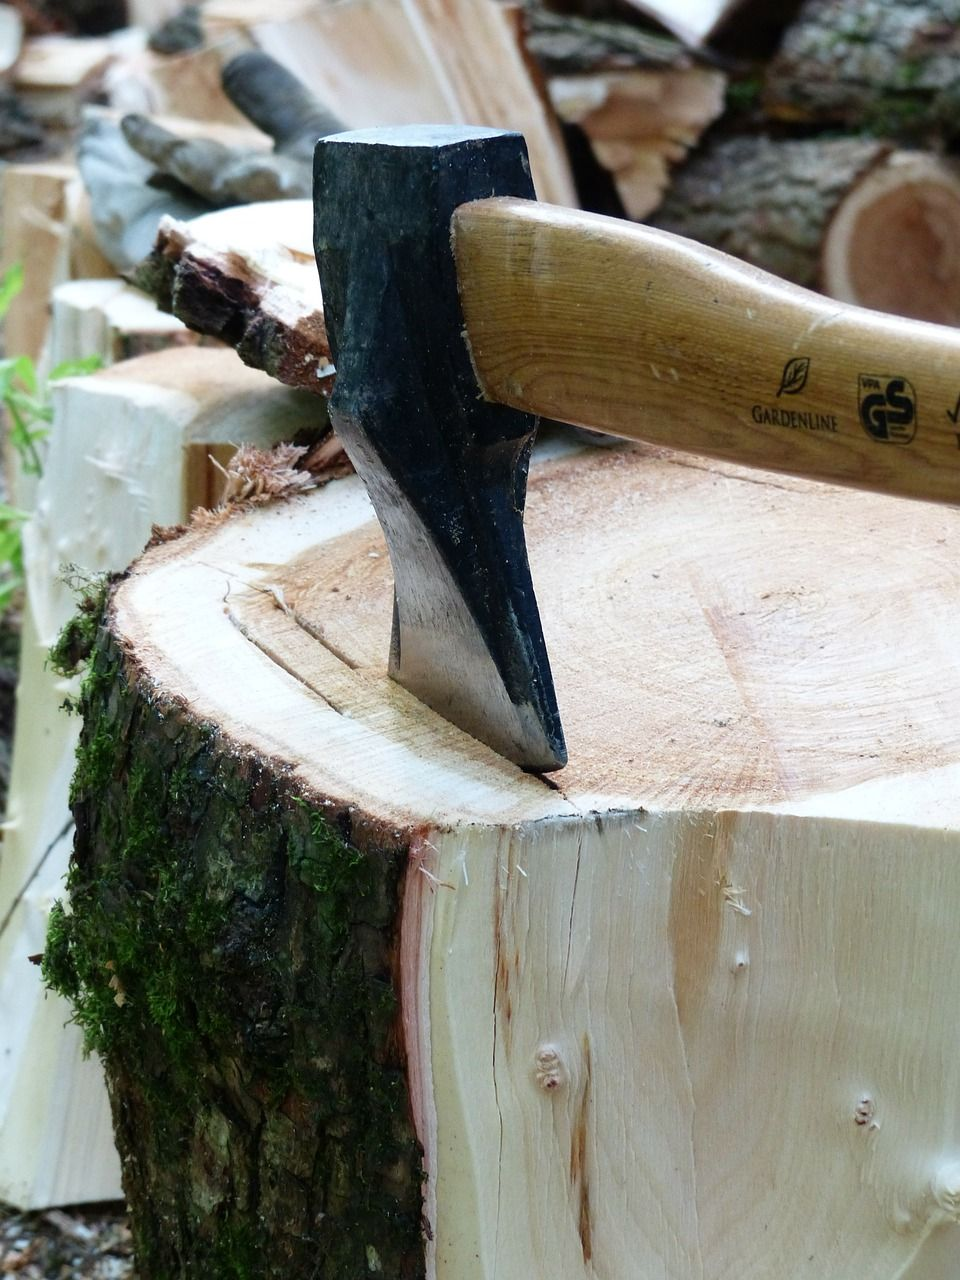 Forest, Ax, Axe, Hack, Wood Chop, Make Wood, Log forest